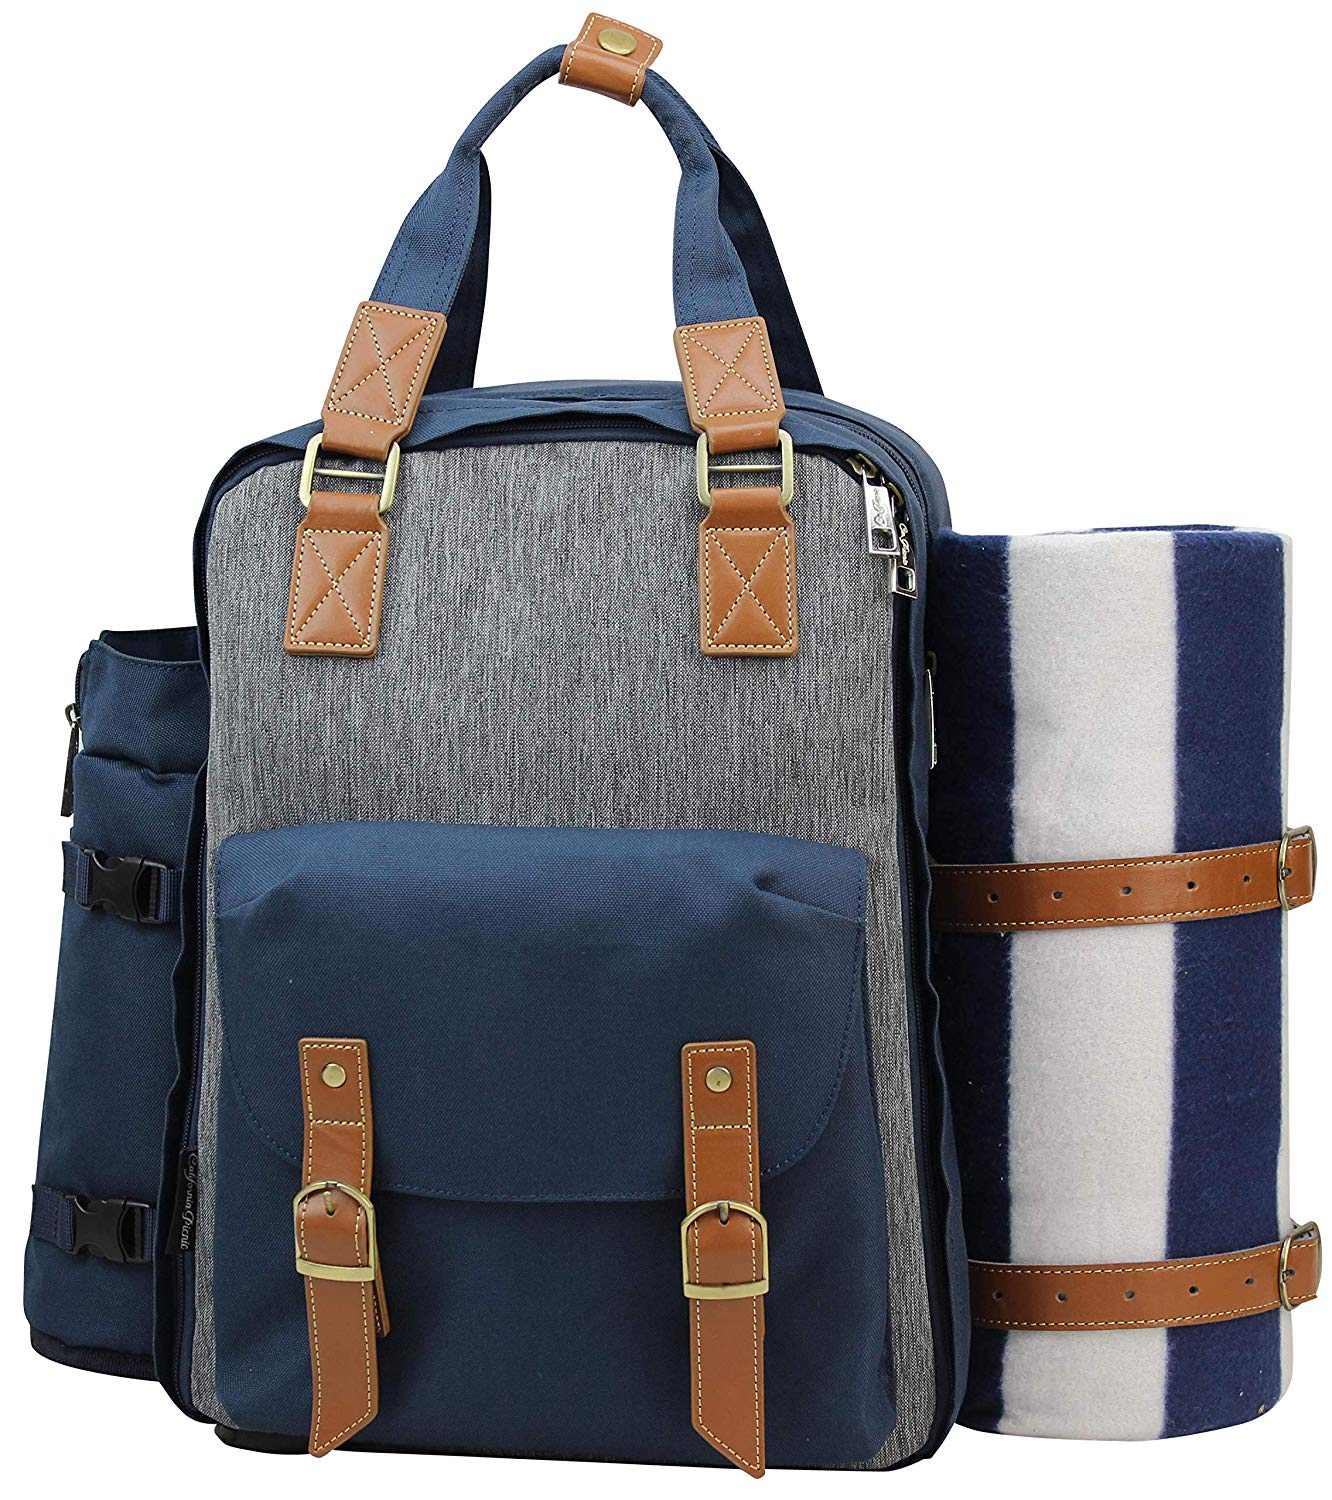 blue and gray picnic backpack set